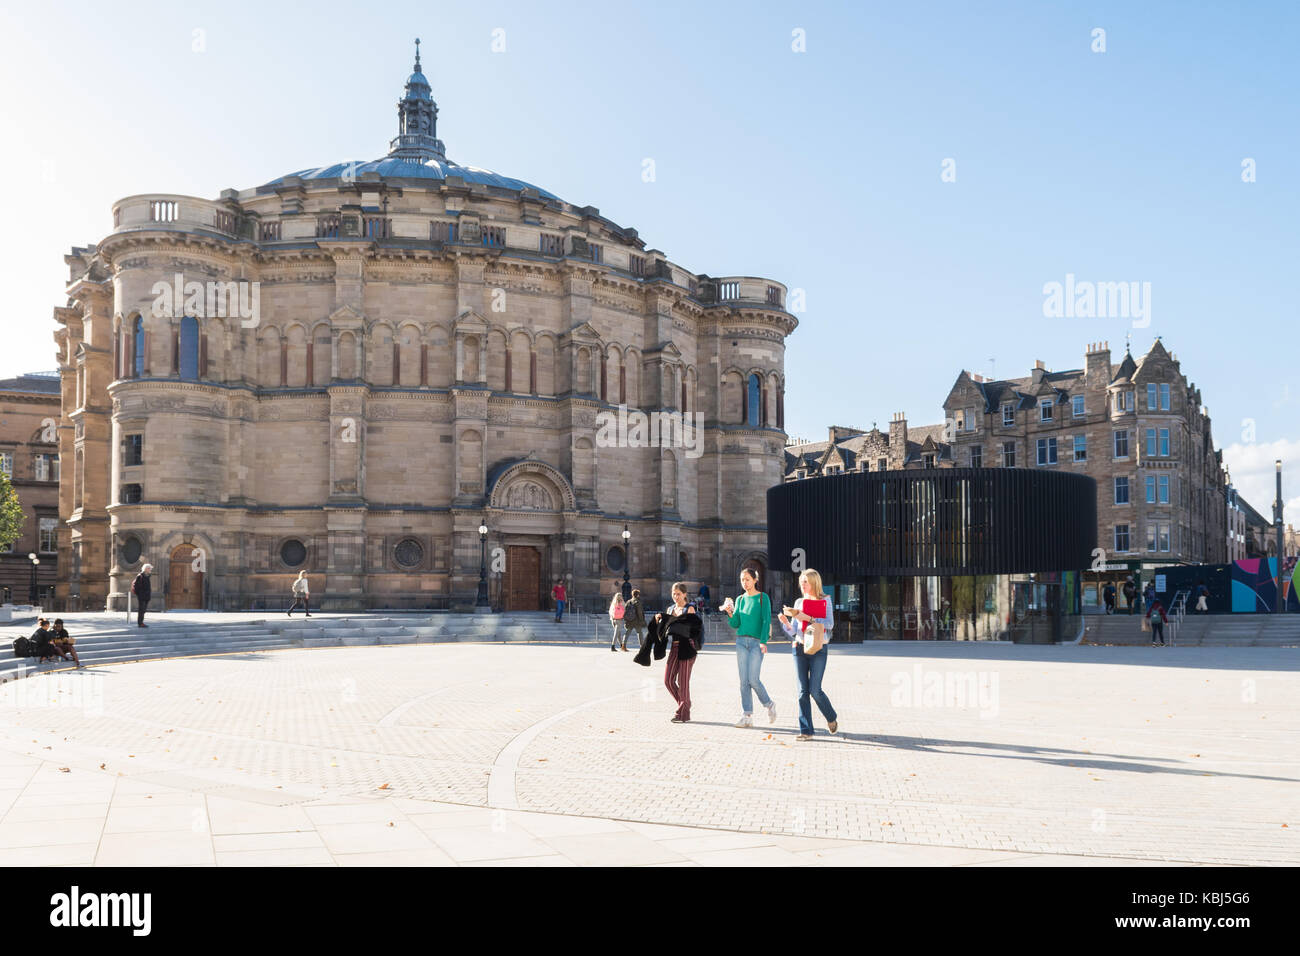 Edinburgh University McEwan Hall, Edinburgh, Scotland, UK - Stock Image